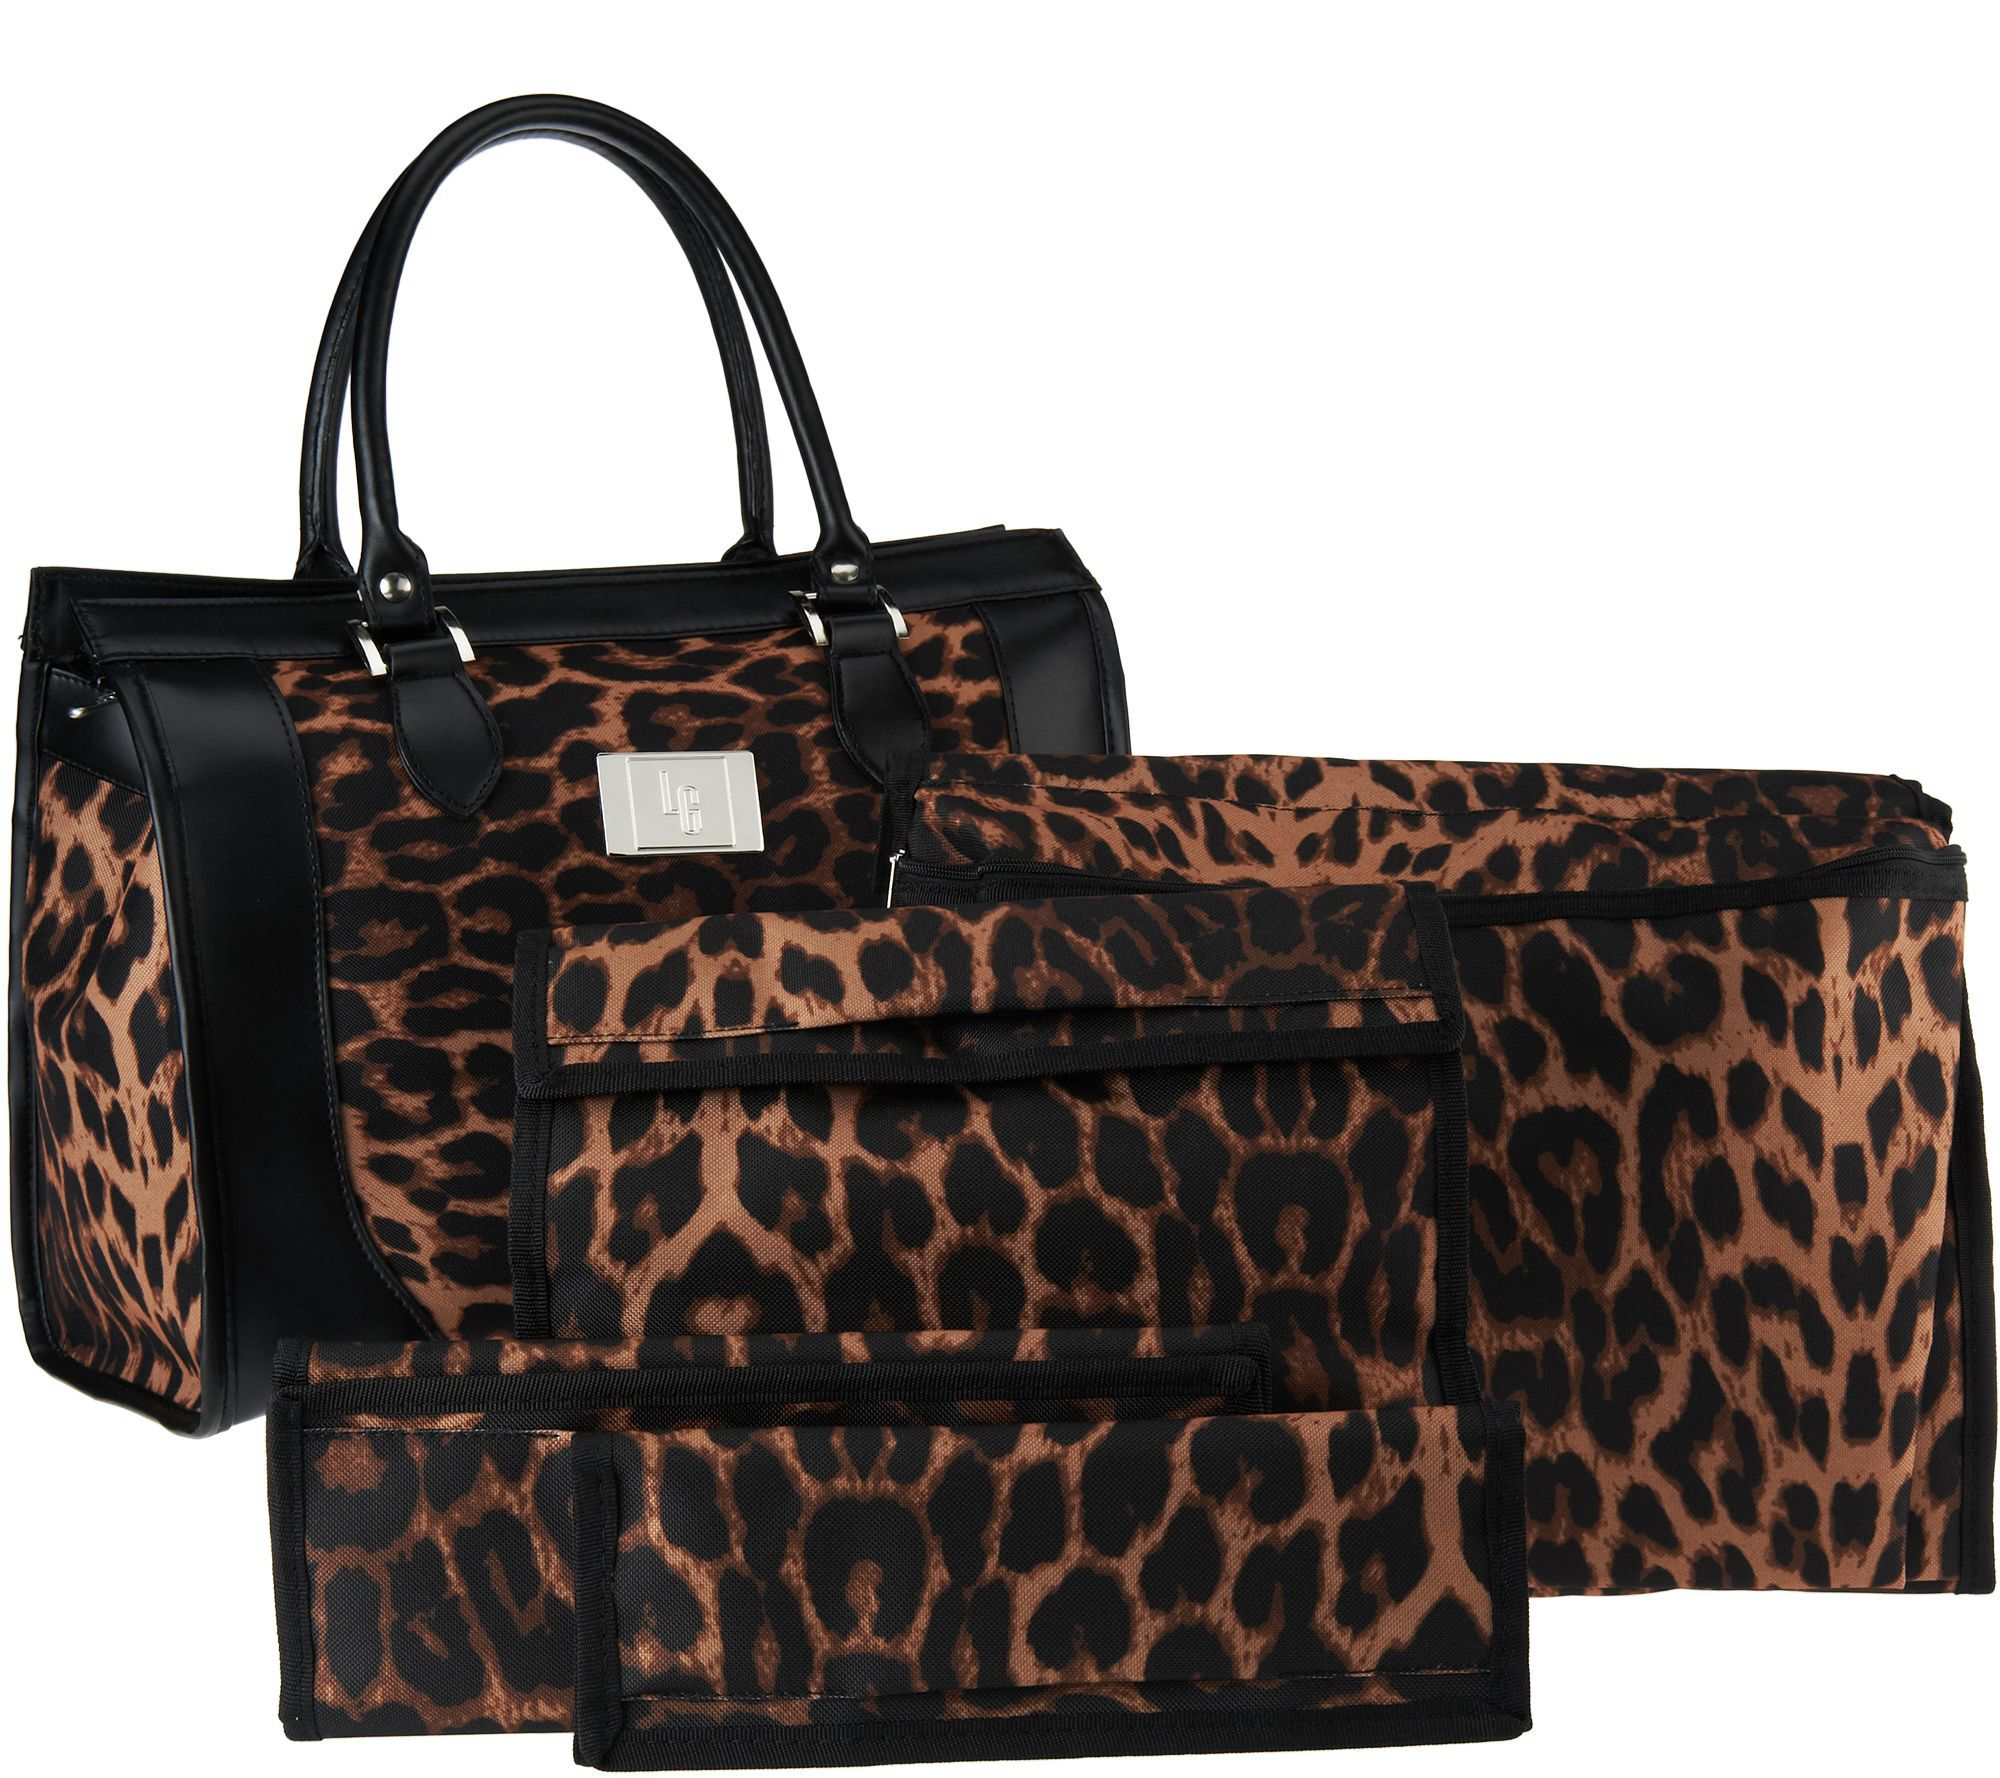 Set Of 4 Travel Organizers With Tote Bag By Lori Greiner Bags